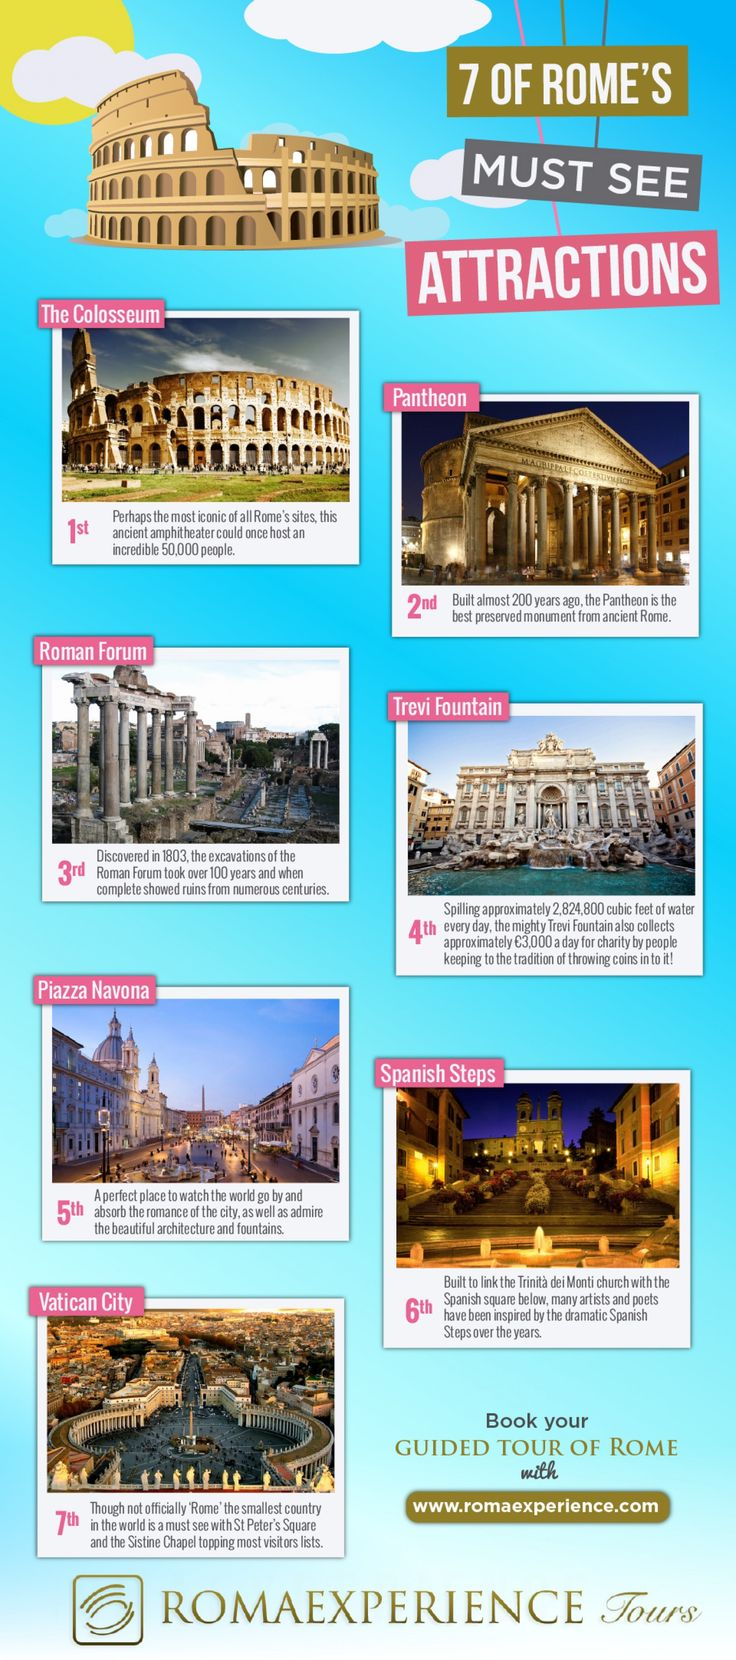 7 of Rome's Must See Attractions #Infographic